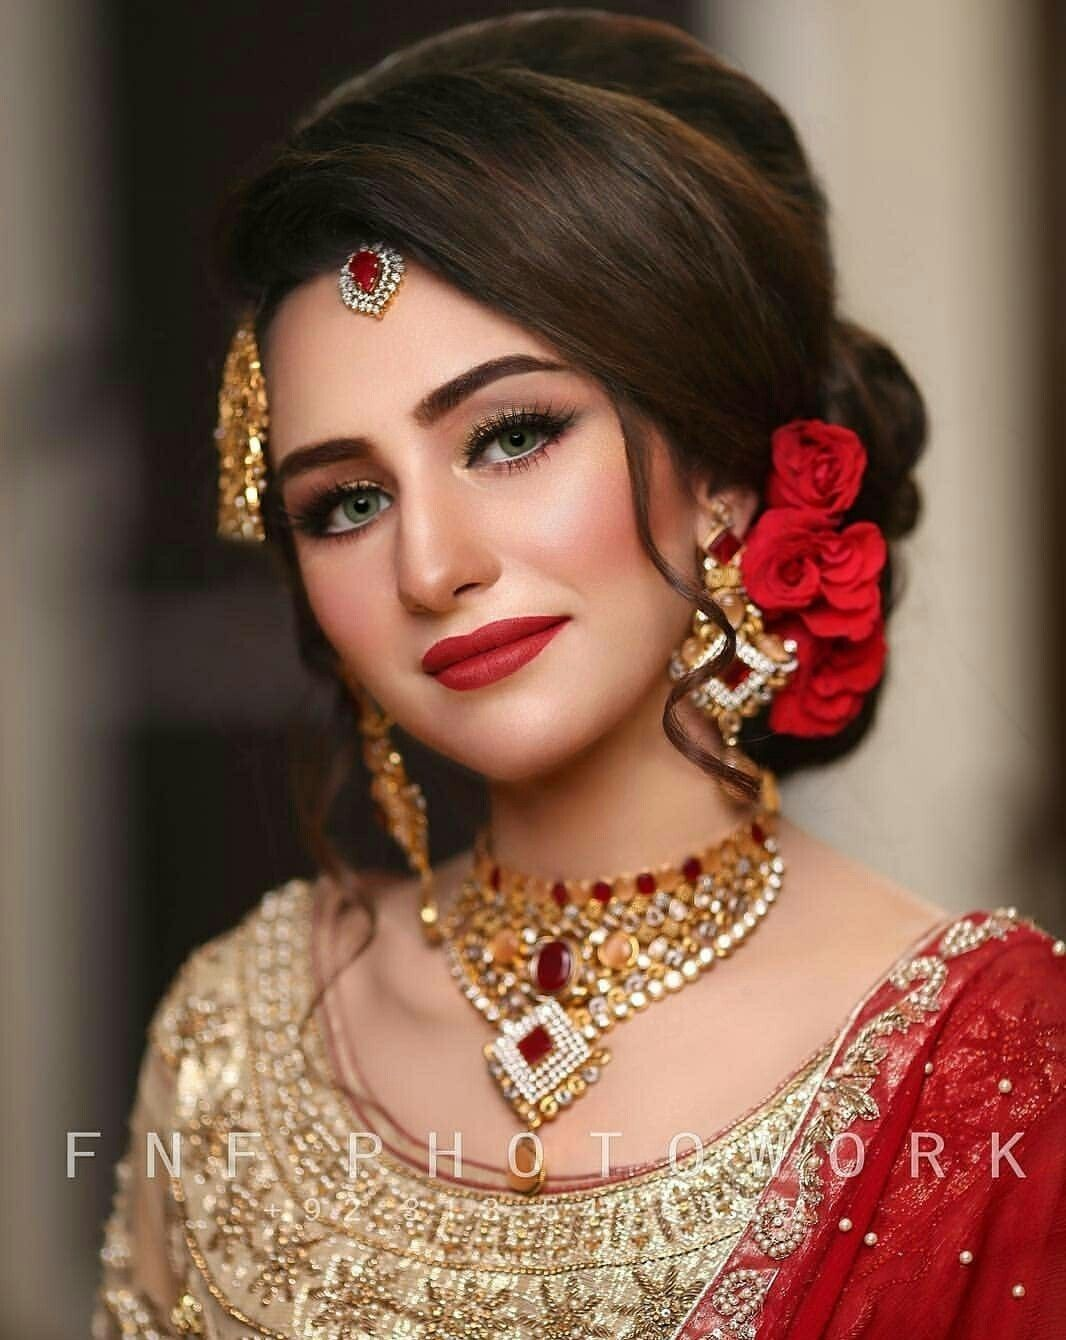 Newest Walima Bridal Hairstyle Videos Tips Bridal Hair And Makeup Pakistani Bridal Hairstyles Indian Bridal Hairstyles